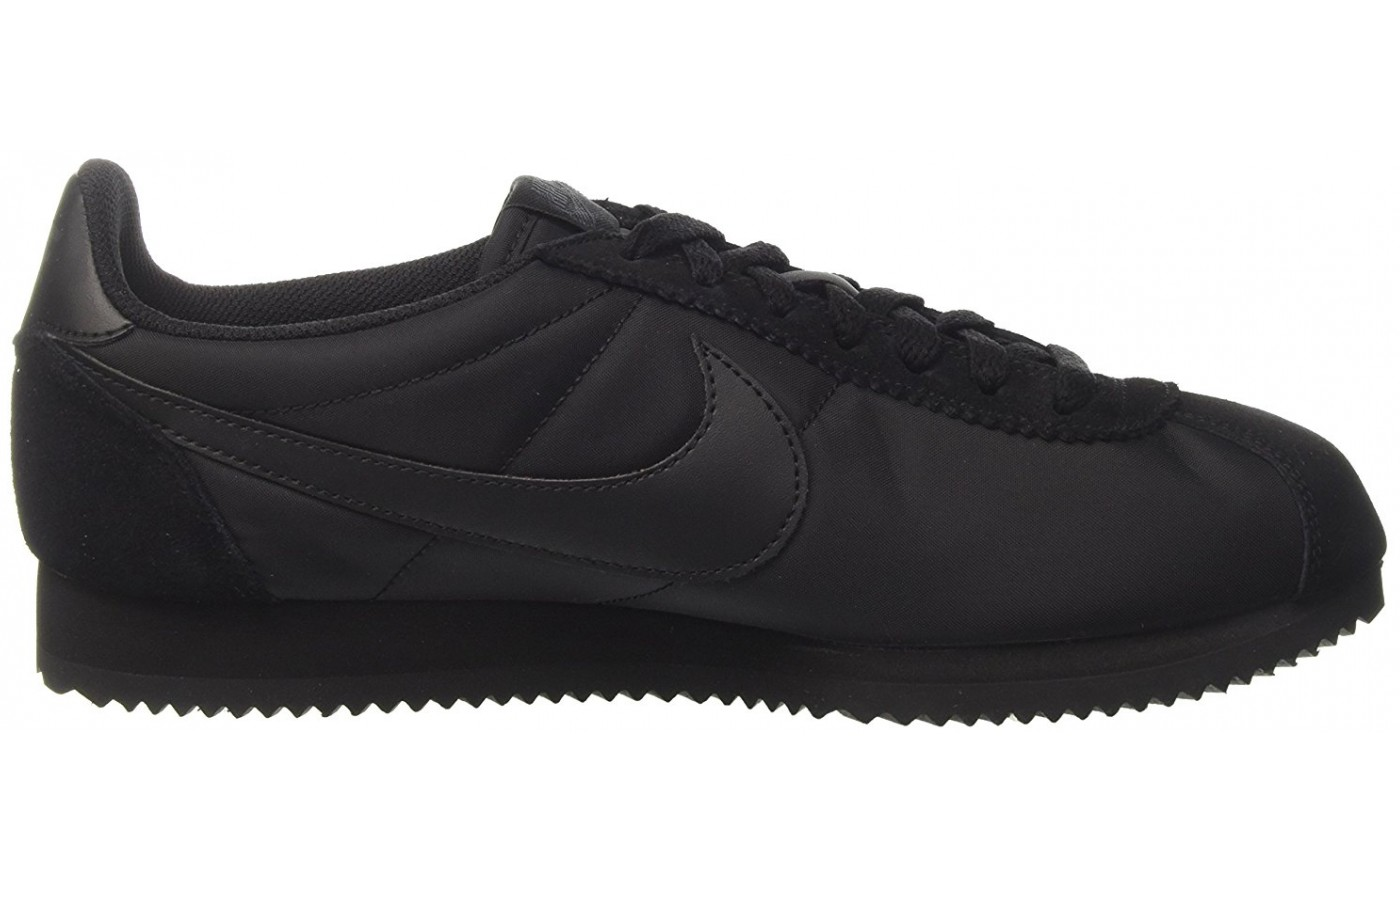 A black variation of the Nike Cortez in Nylon